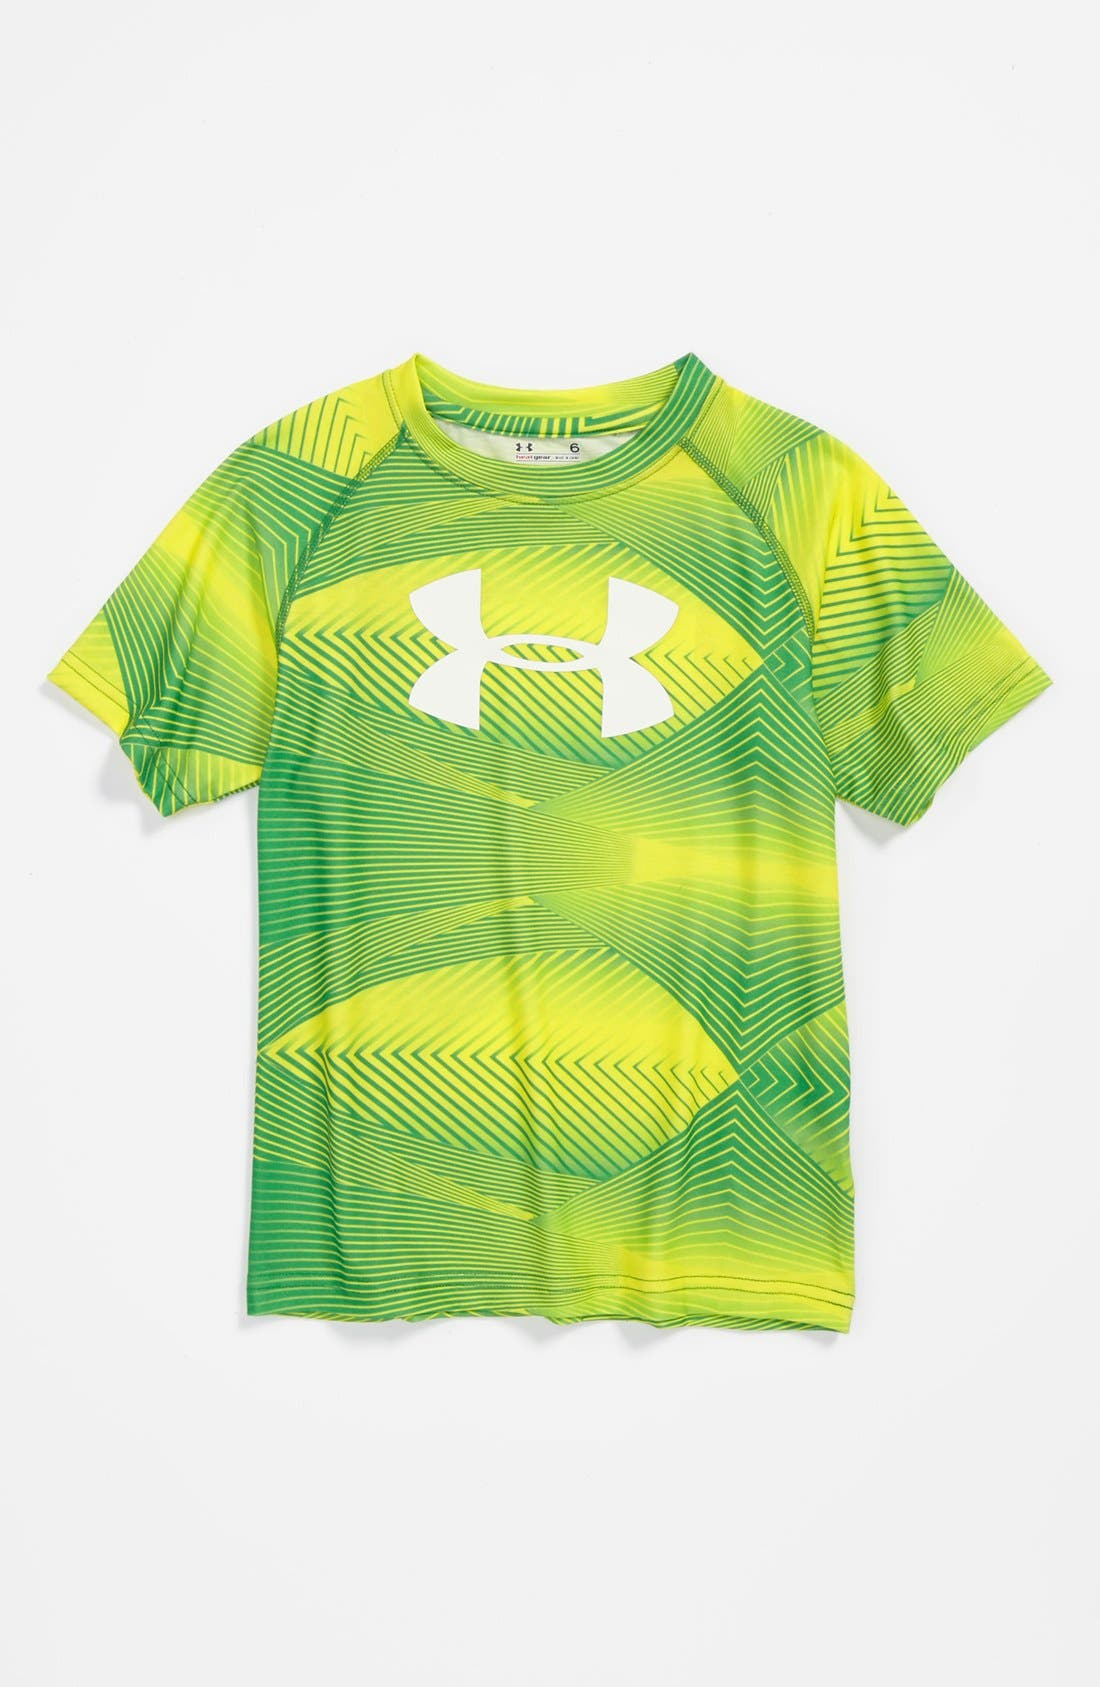 Main Image - Under Armour 'Ultralight' T-Shirt (Little Boys)